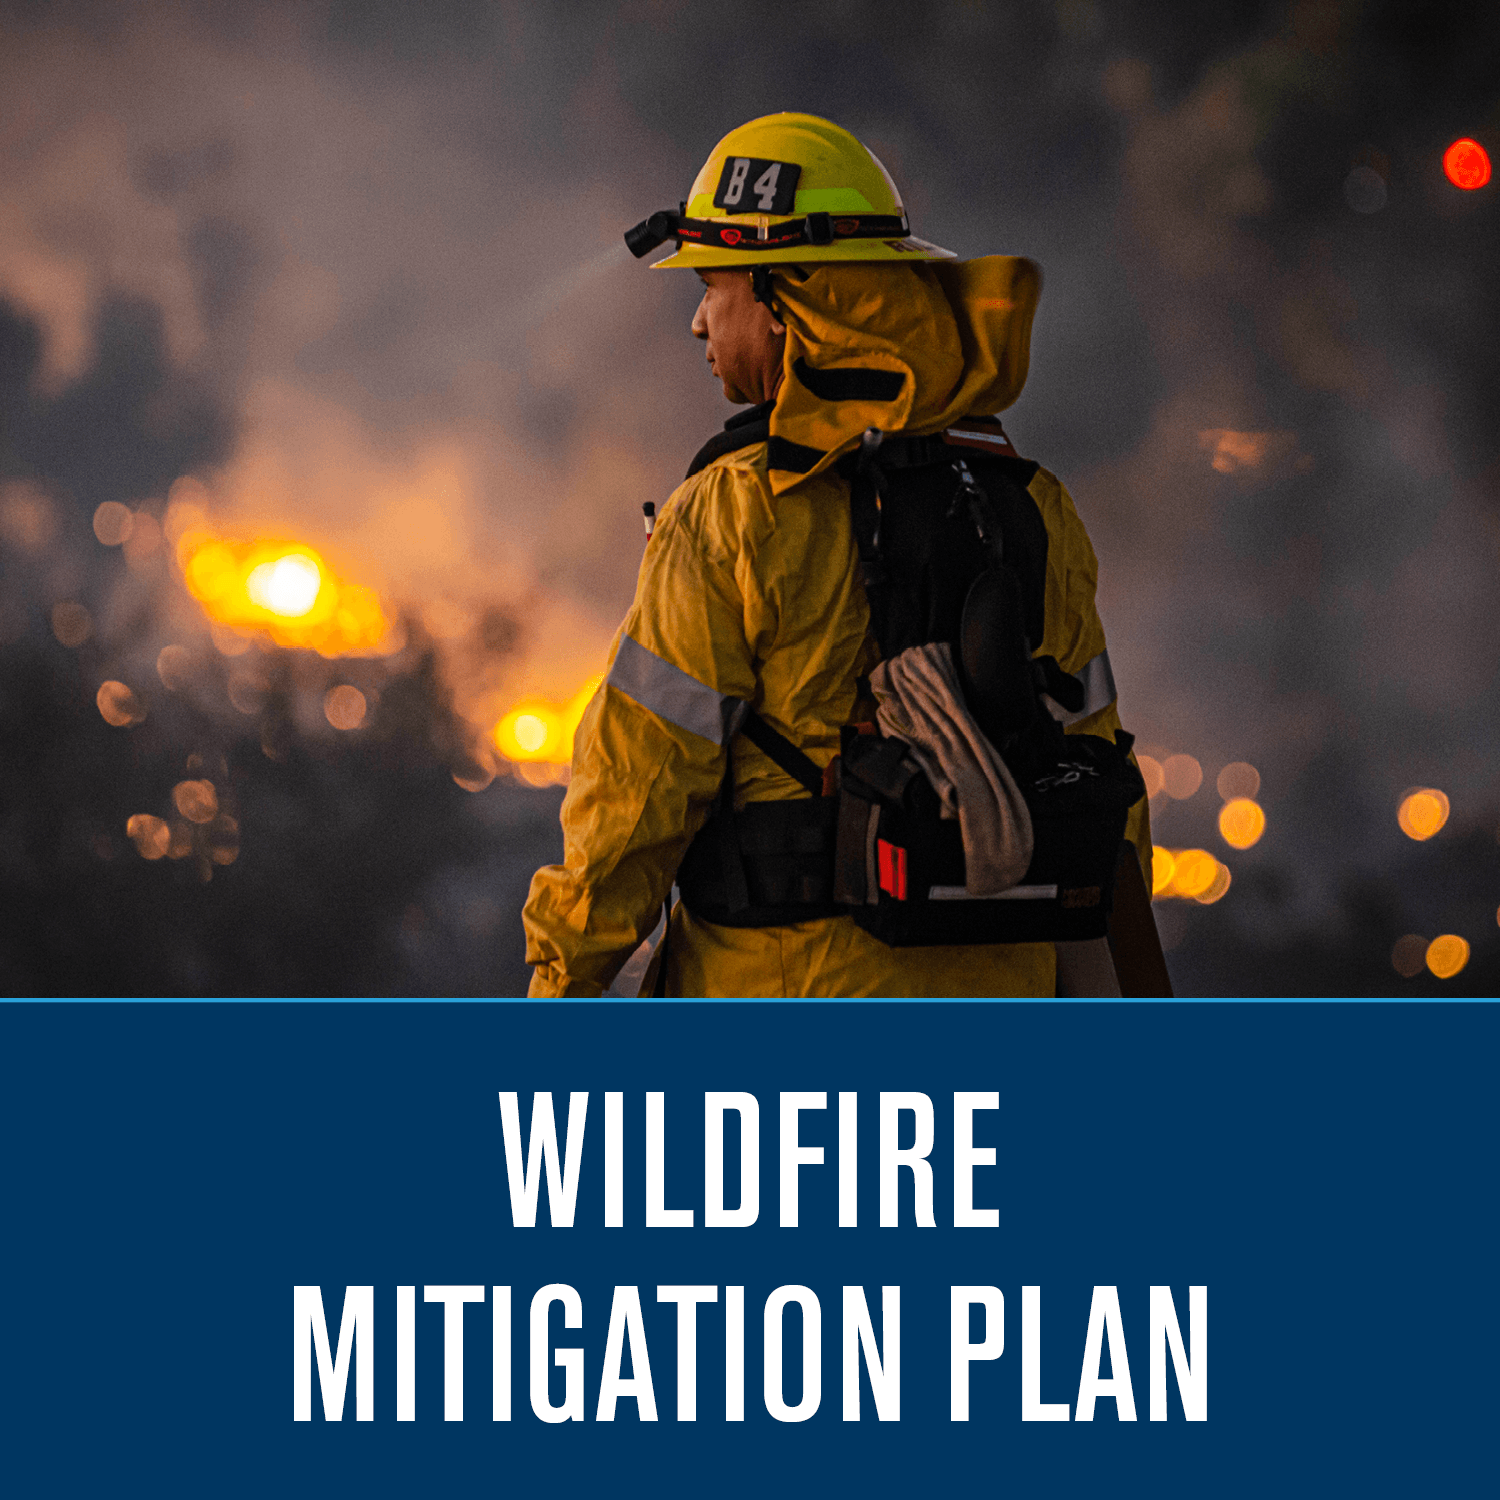 Wildfire Mitigation Plan